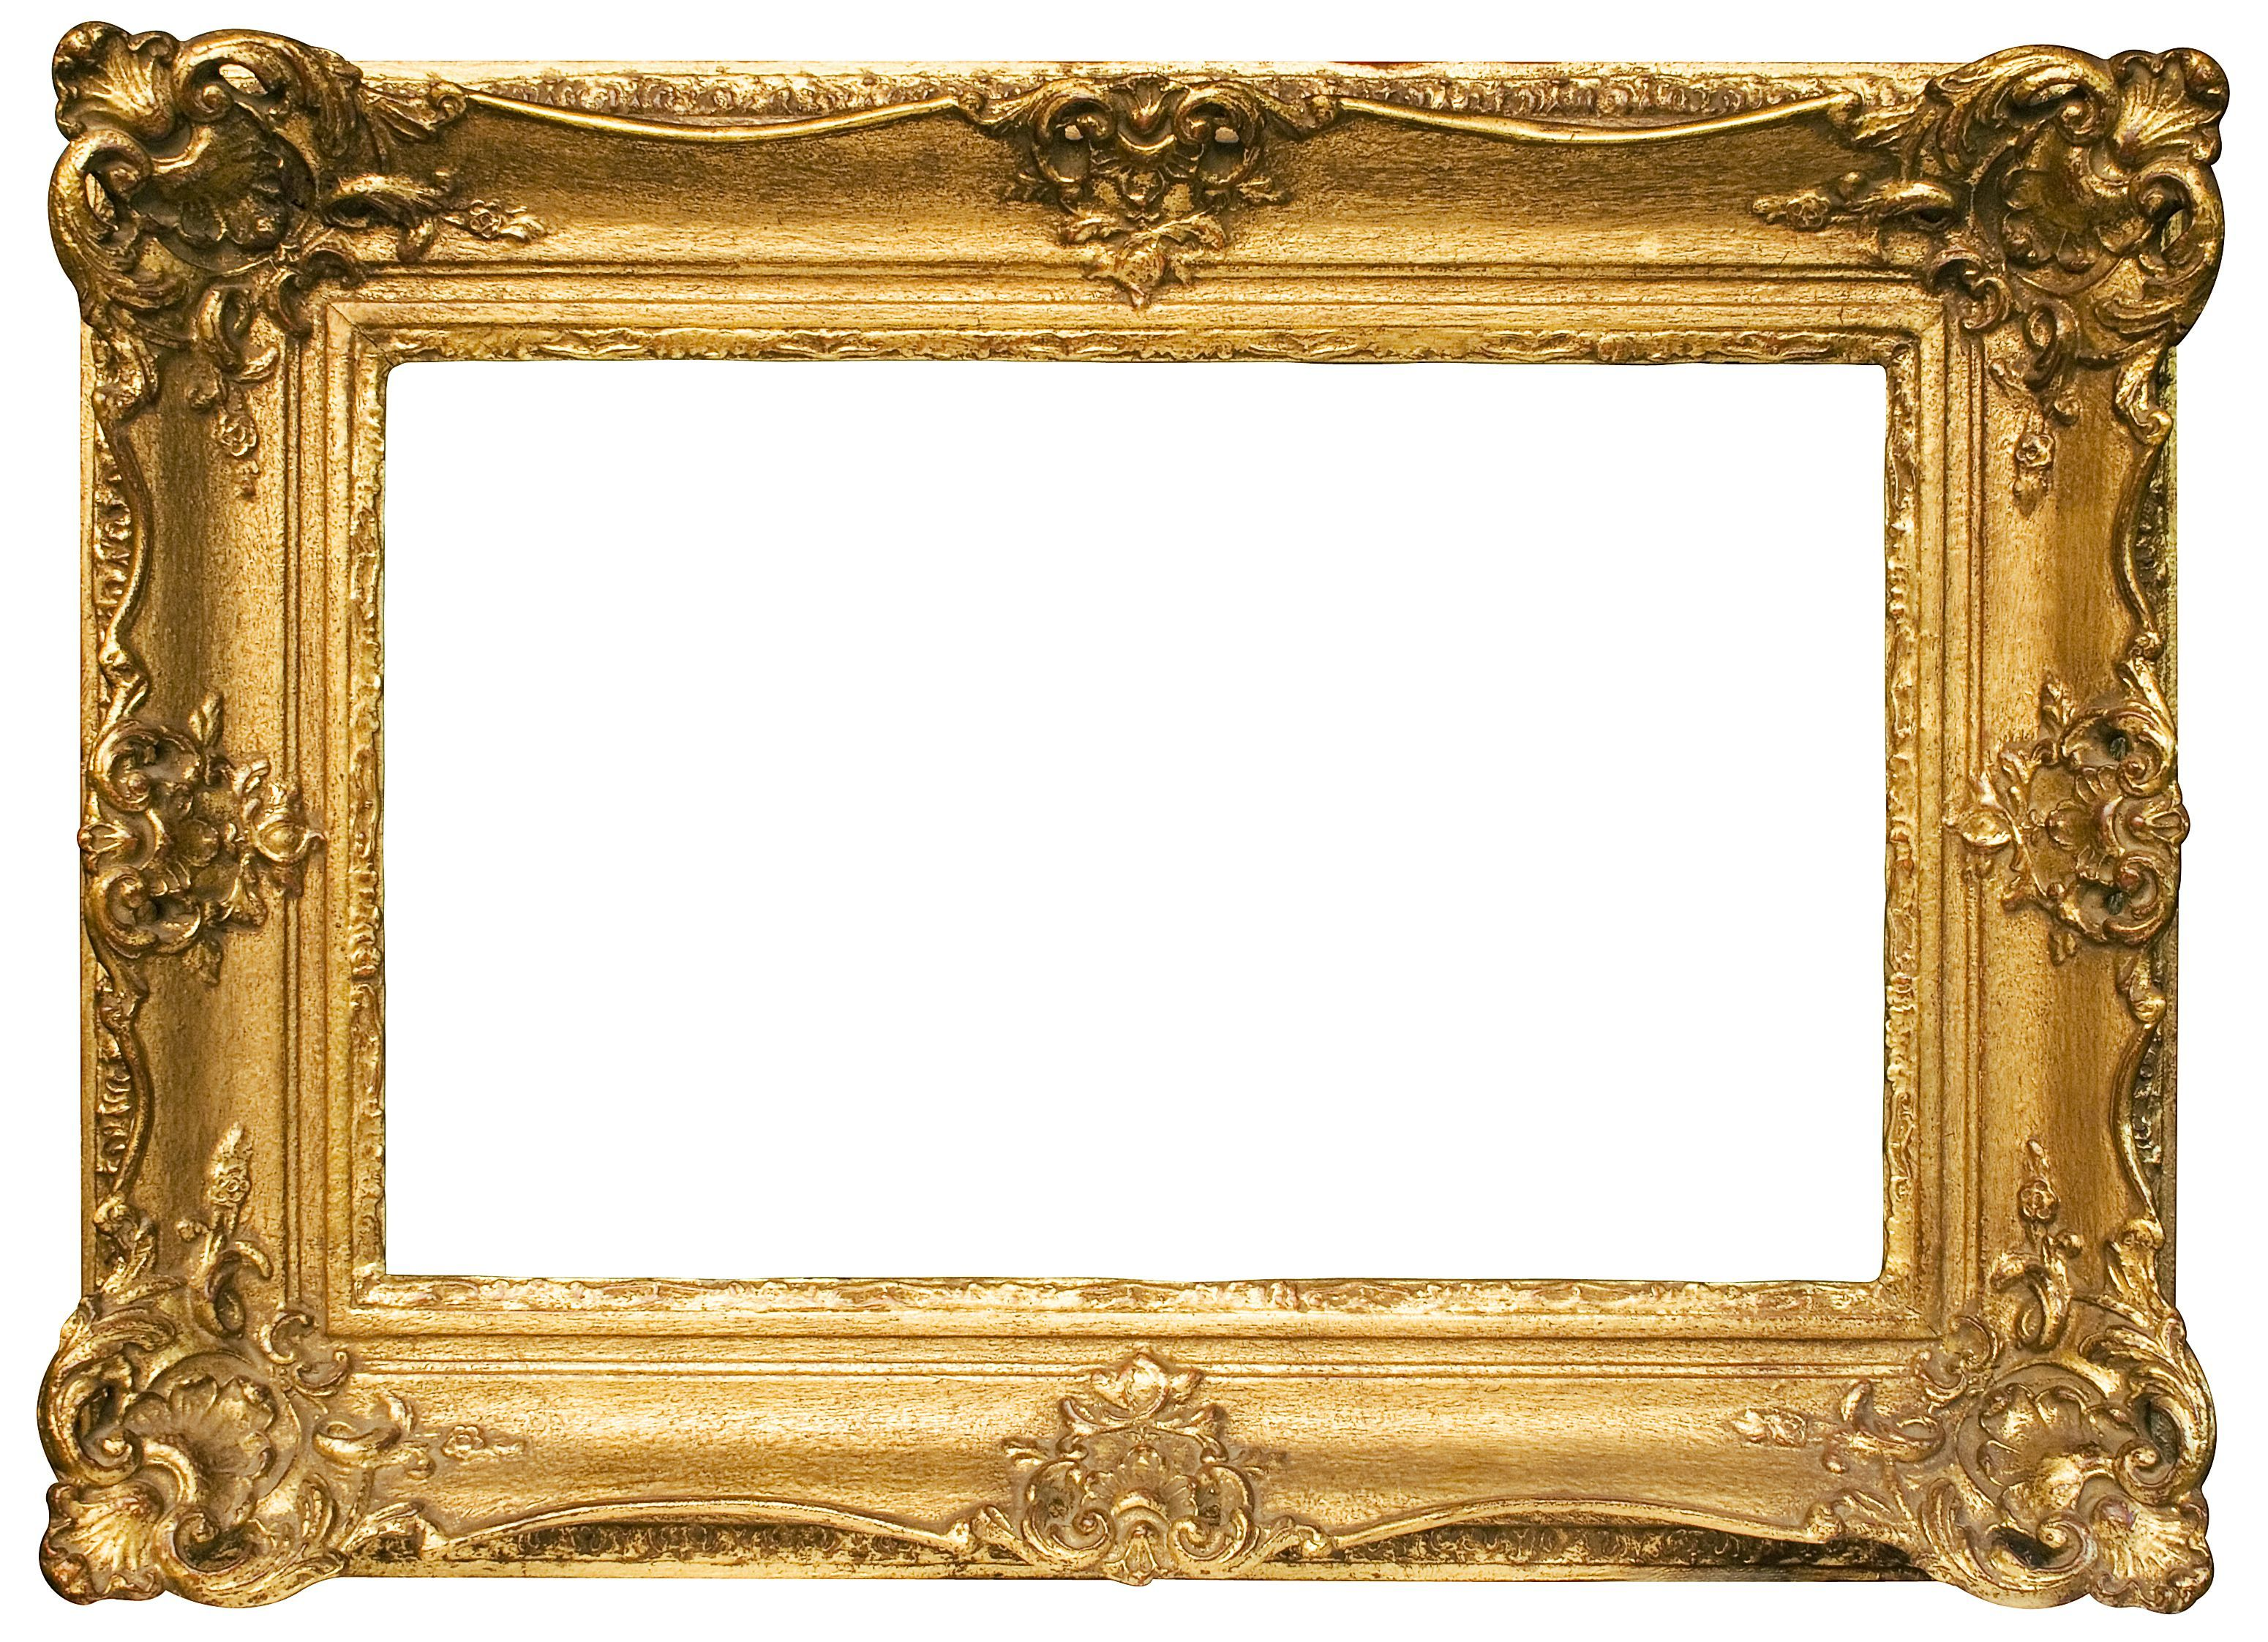 download this gold plated wooden picture frame w path wide photo now and search more of the webs best library of royalty free stock images from istock